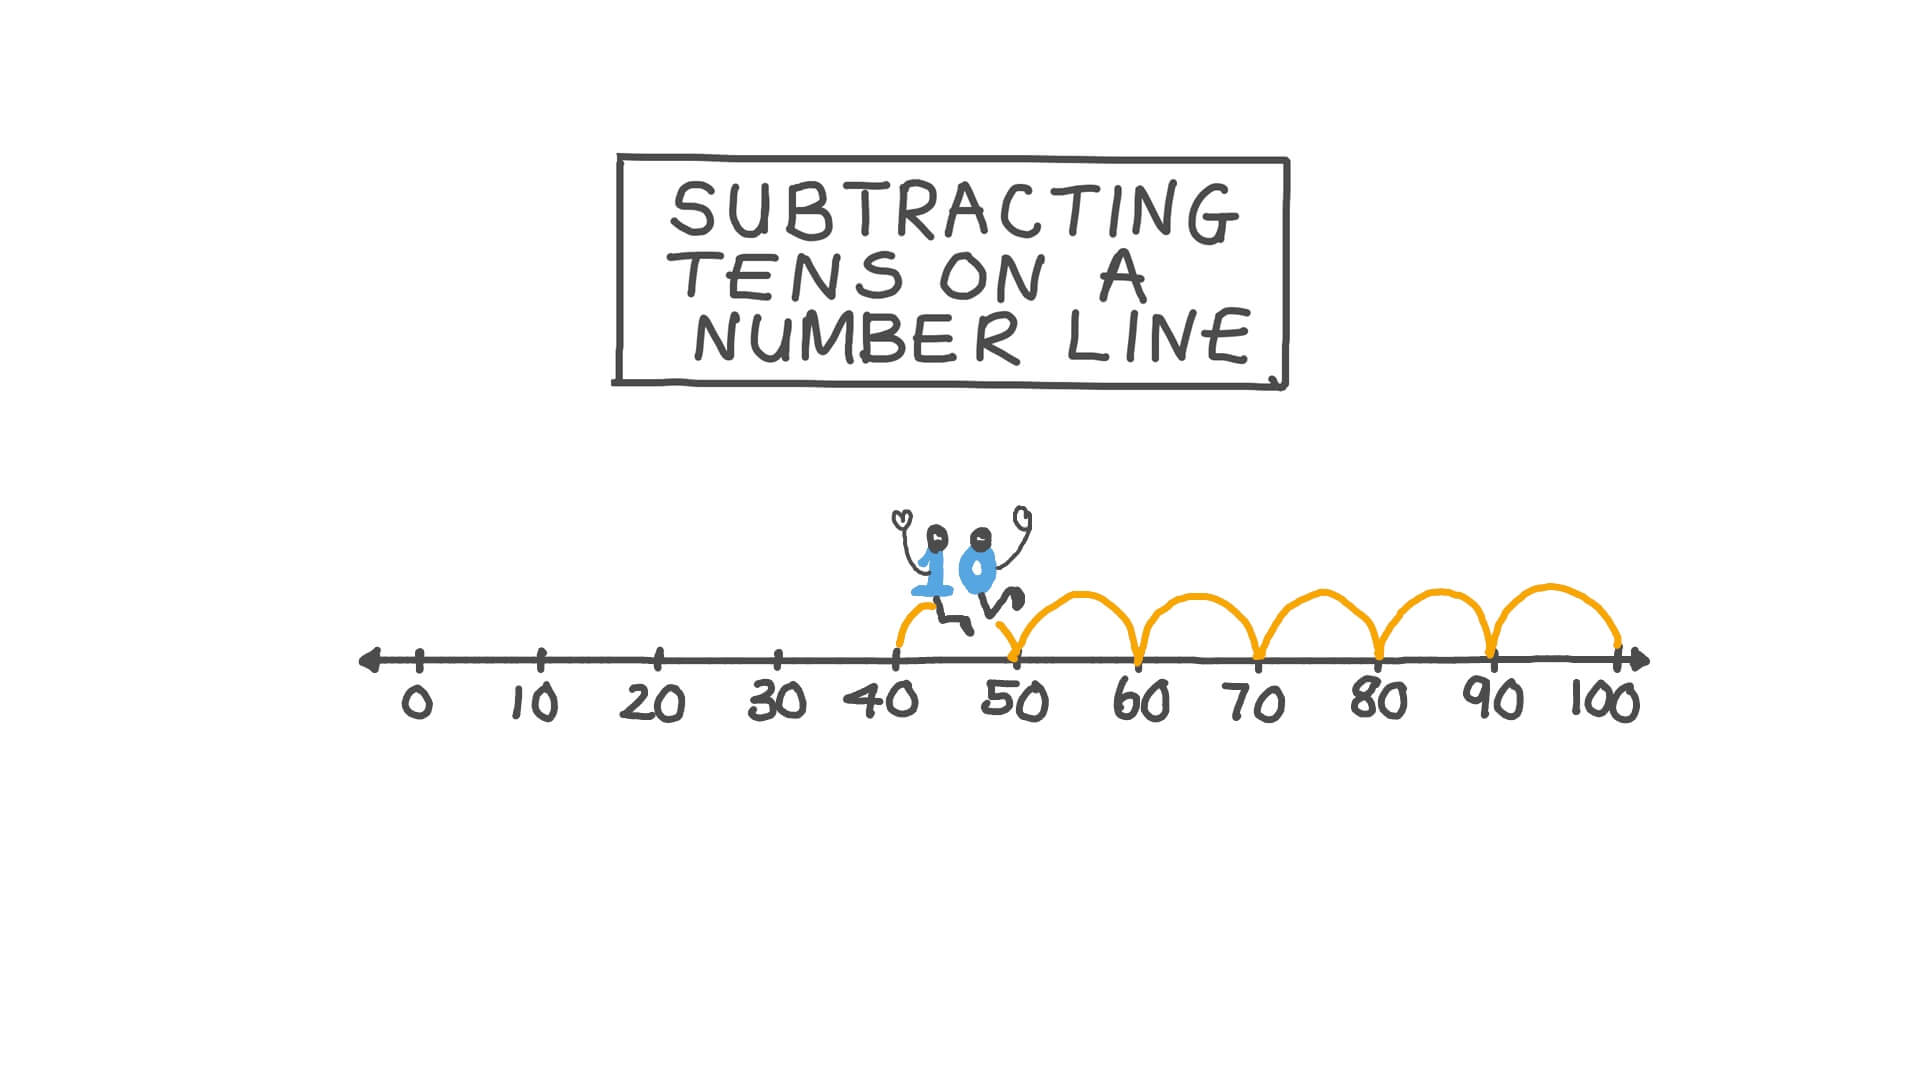 hight resolution of Lesson: Subtracting Tens on a Number Line   Nagwa